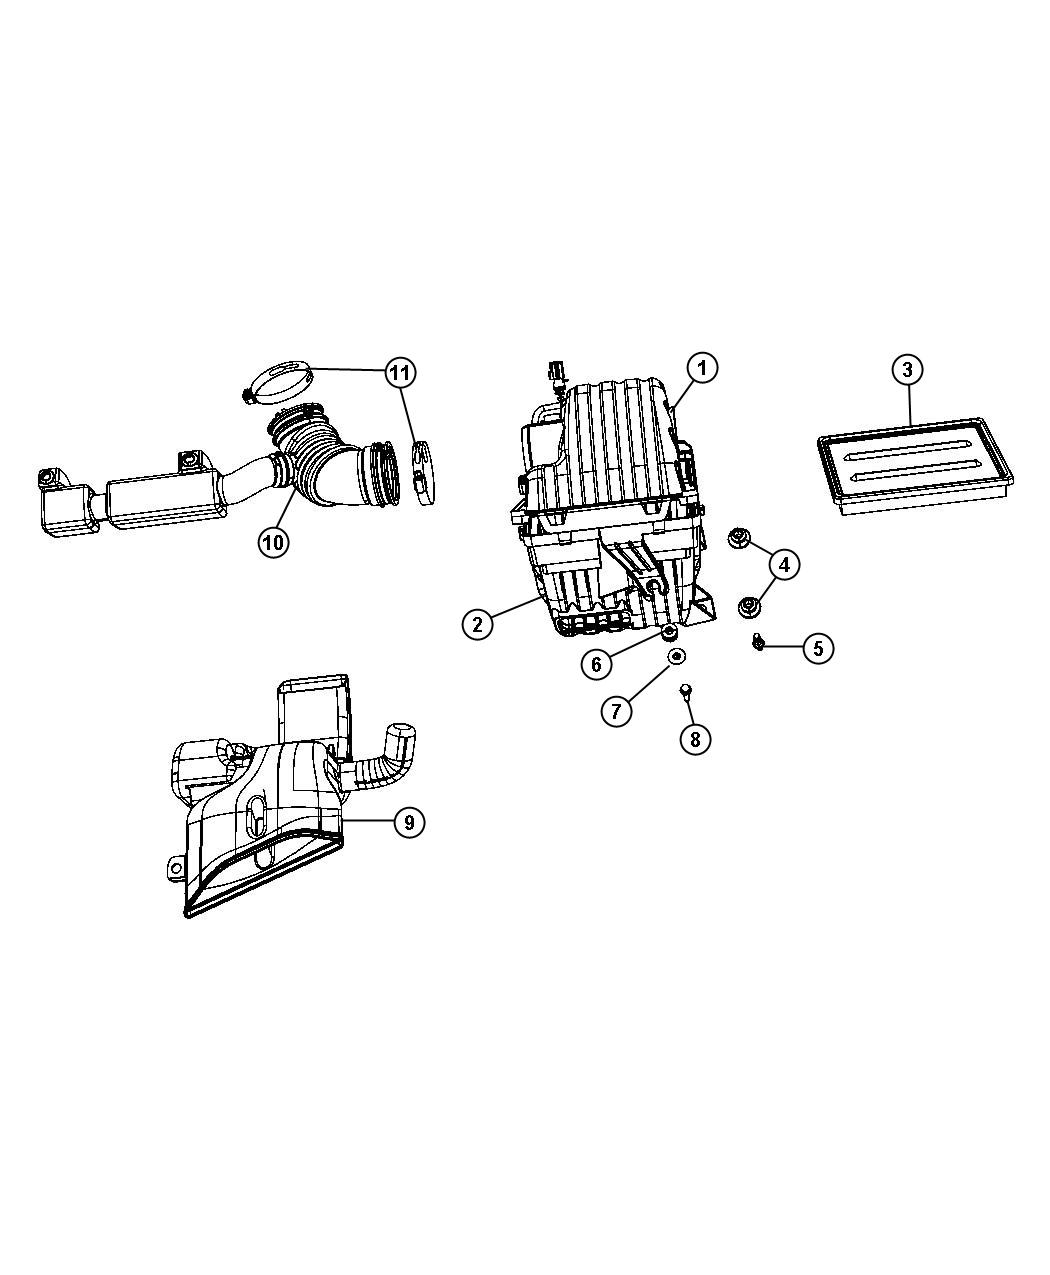 top suggestions chevy 3 5l engine diagram valves :